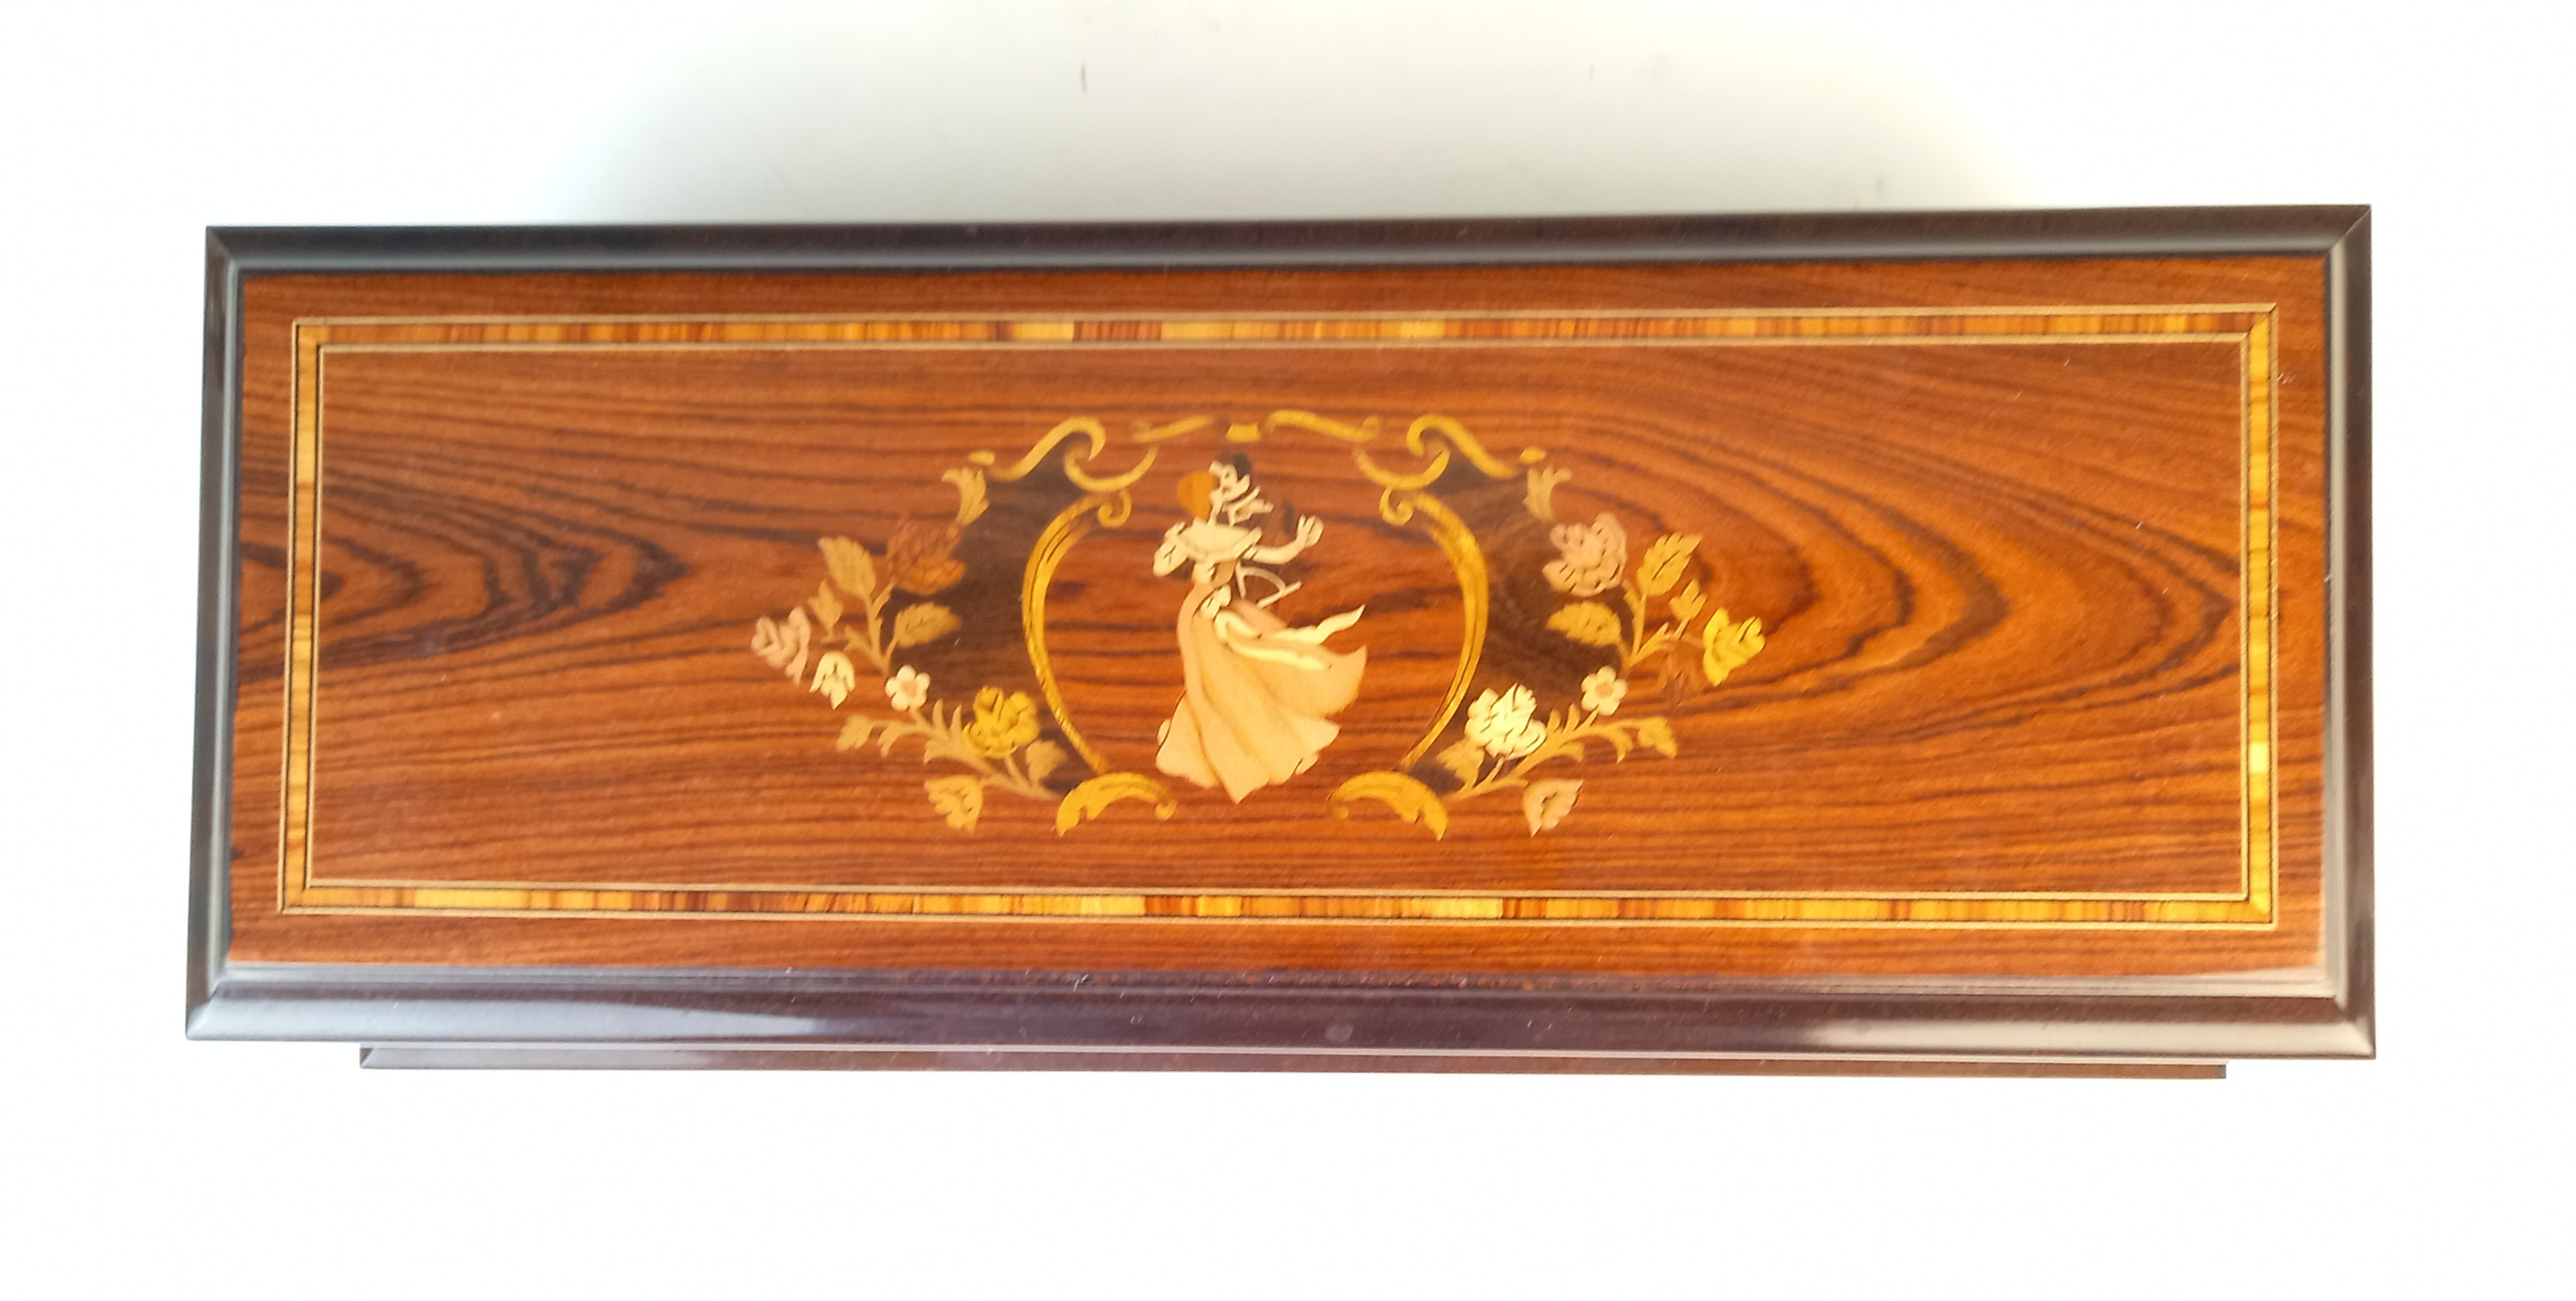 A Franklin Mint and Reuge of Switzerland 'Waltzes of Old Vienna music box', - Image 3 of 8